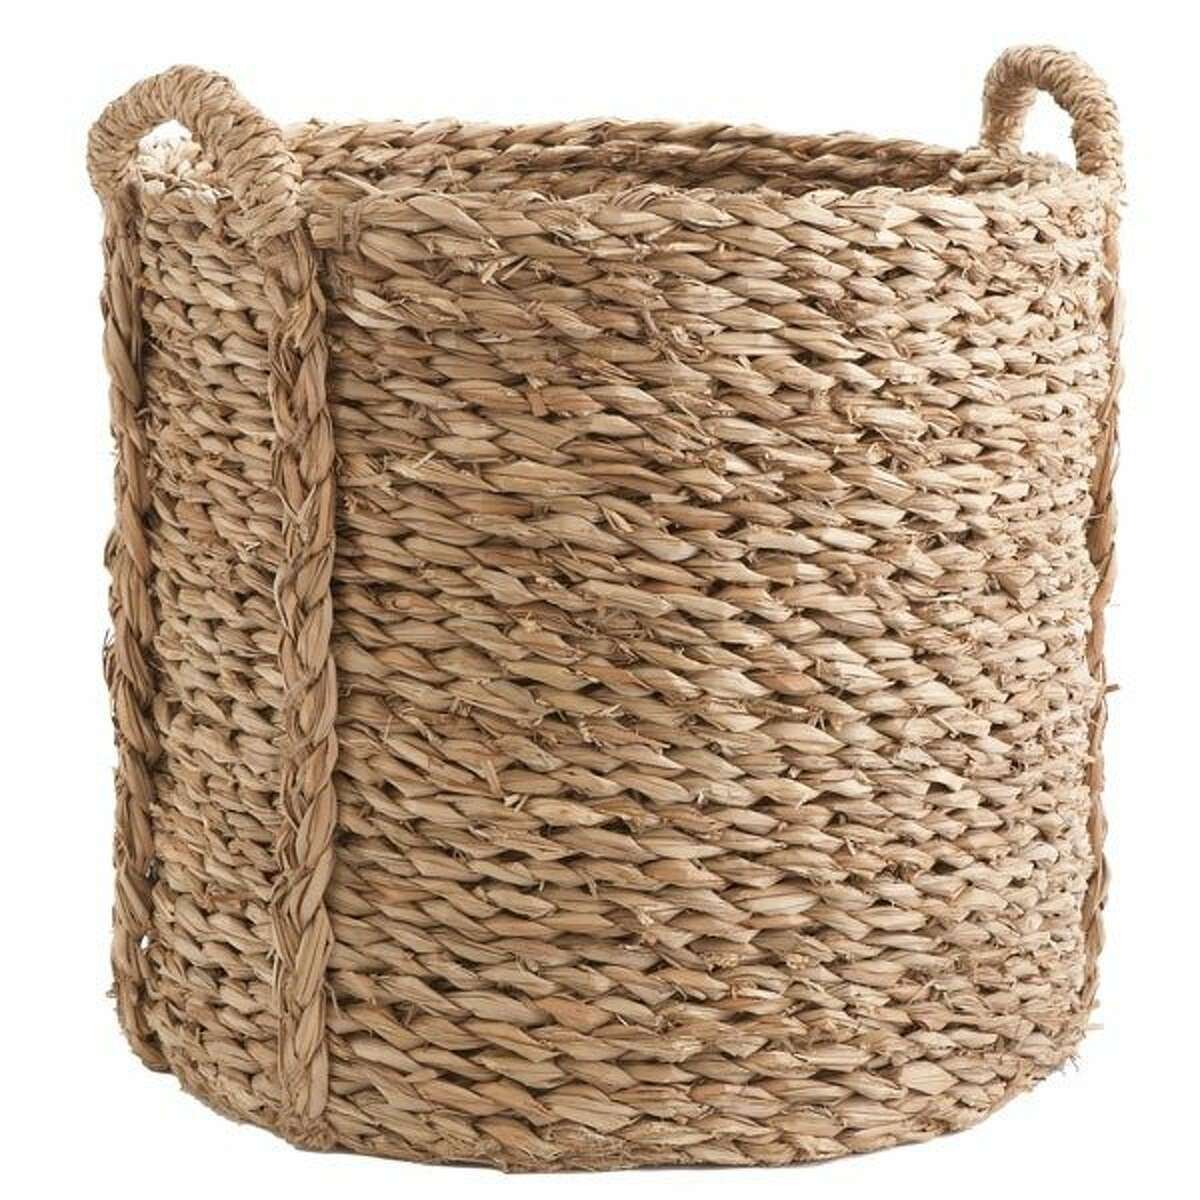 less: $69 Large Woven Seagrass Basket from Wisteria (wisteria.com)